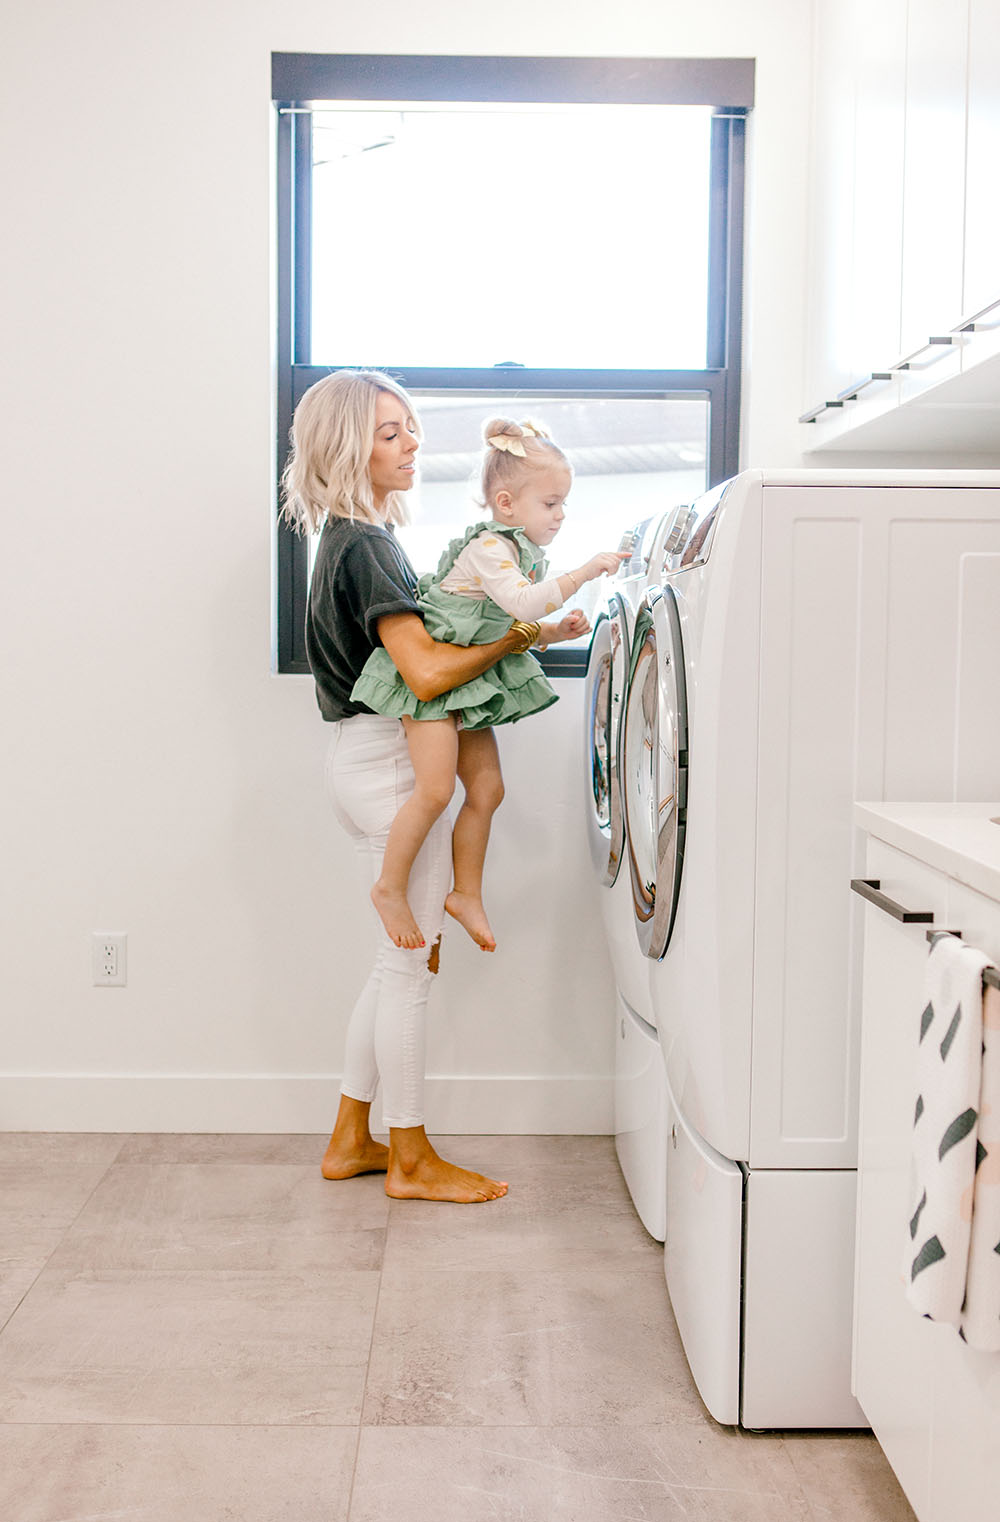 Kailee Wright laundry tips and tricks